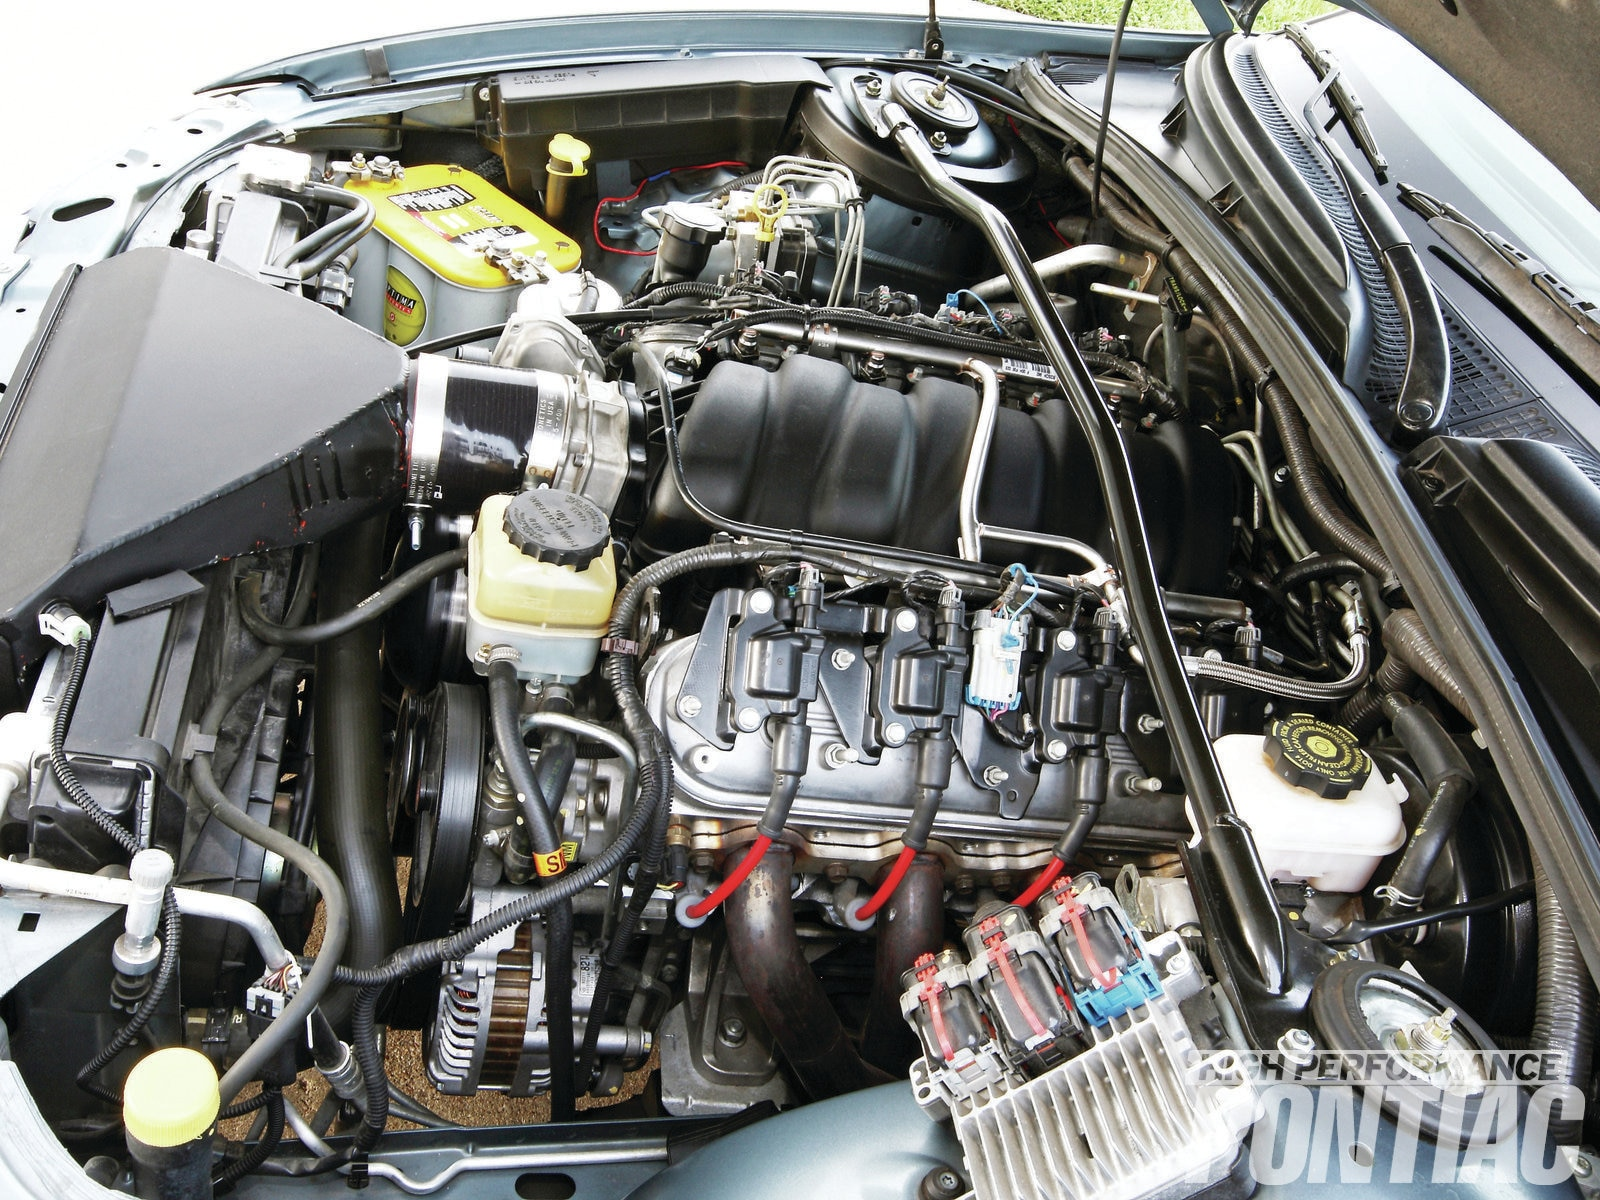 hight resolution of 2006 gto engine diagram data wiring diagram schema gto 6 0 2006 gto engine diagram